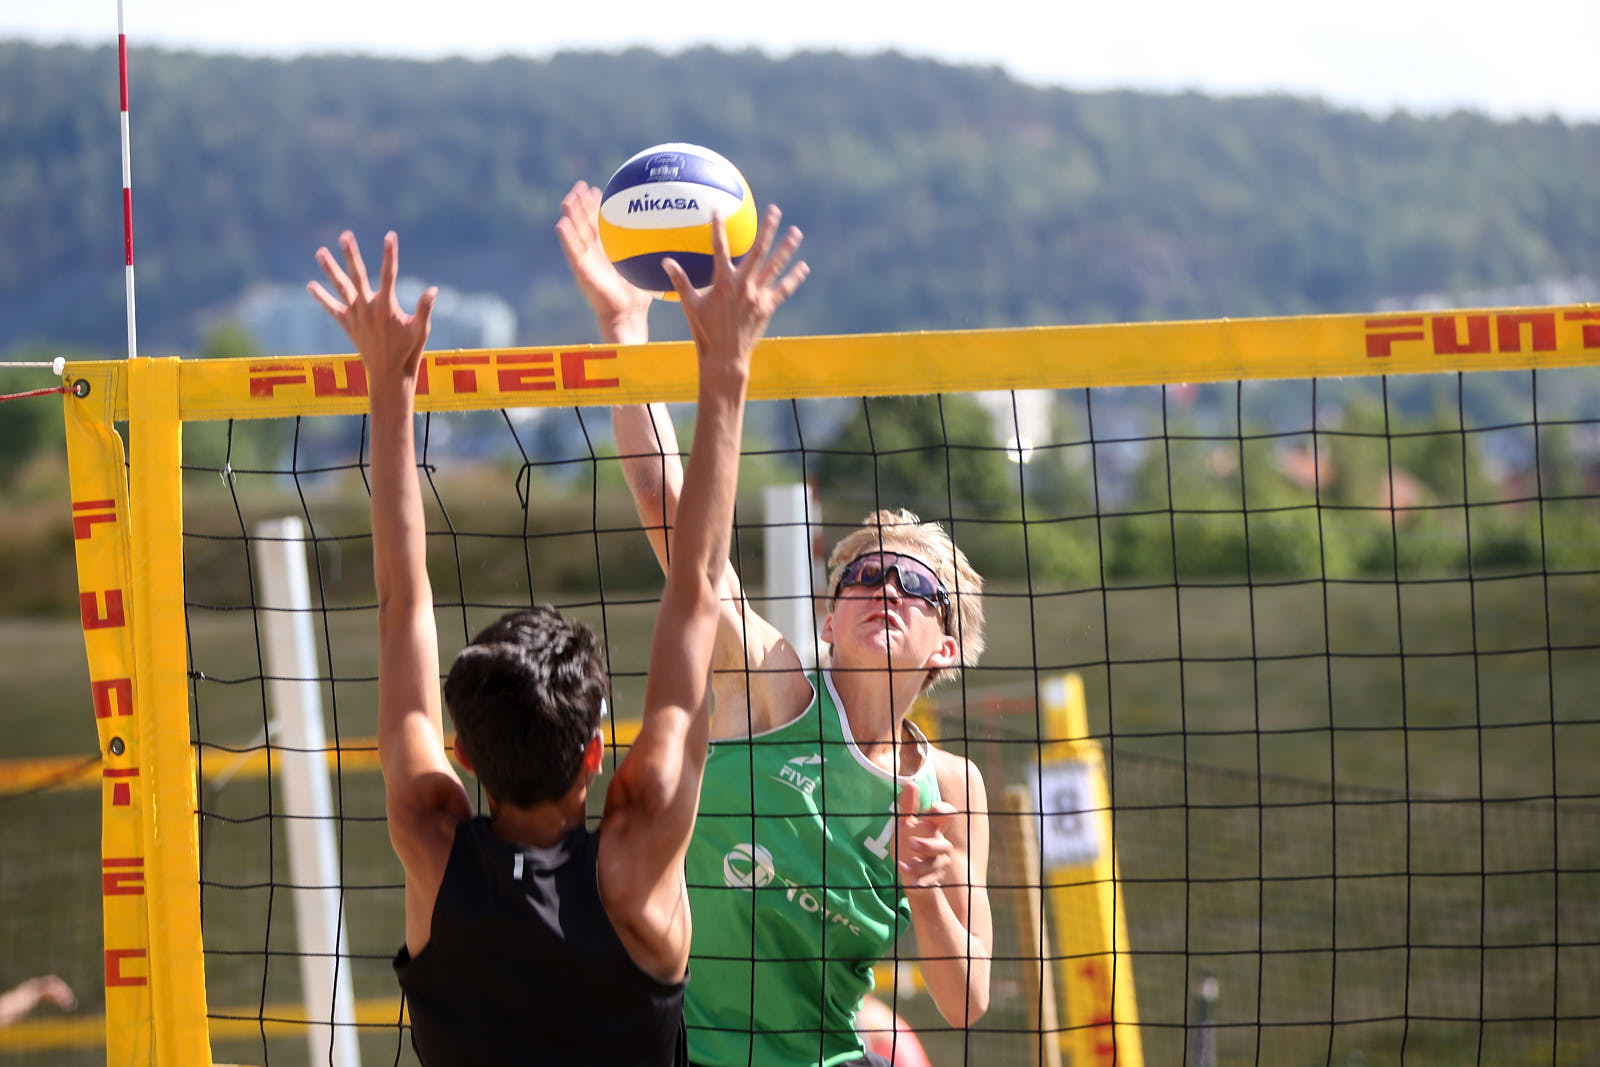 nm-u19-sandvolleyball-dag-2017.jpg